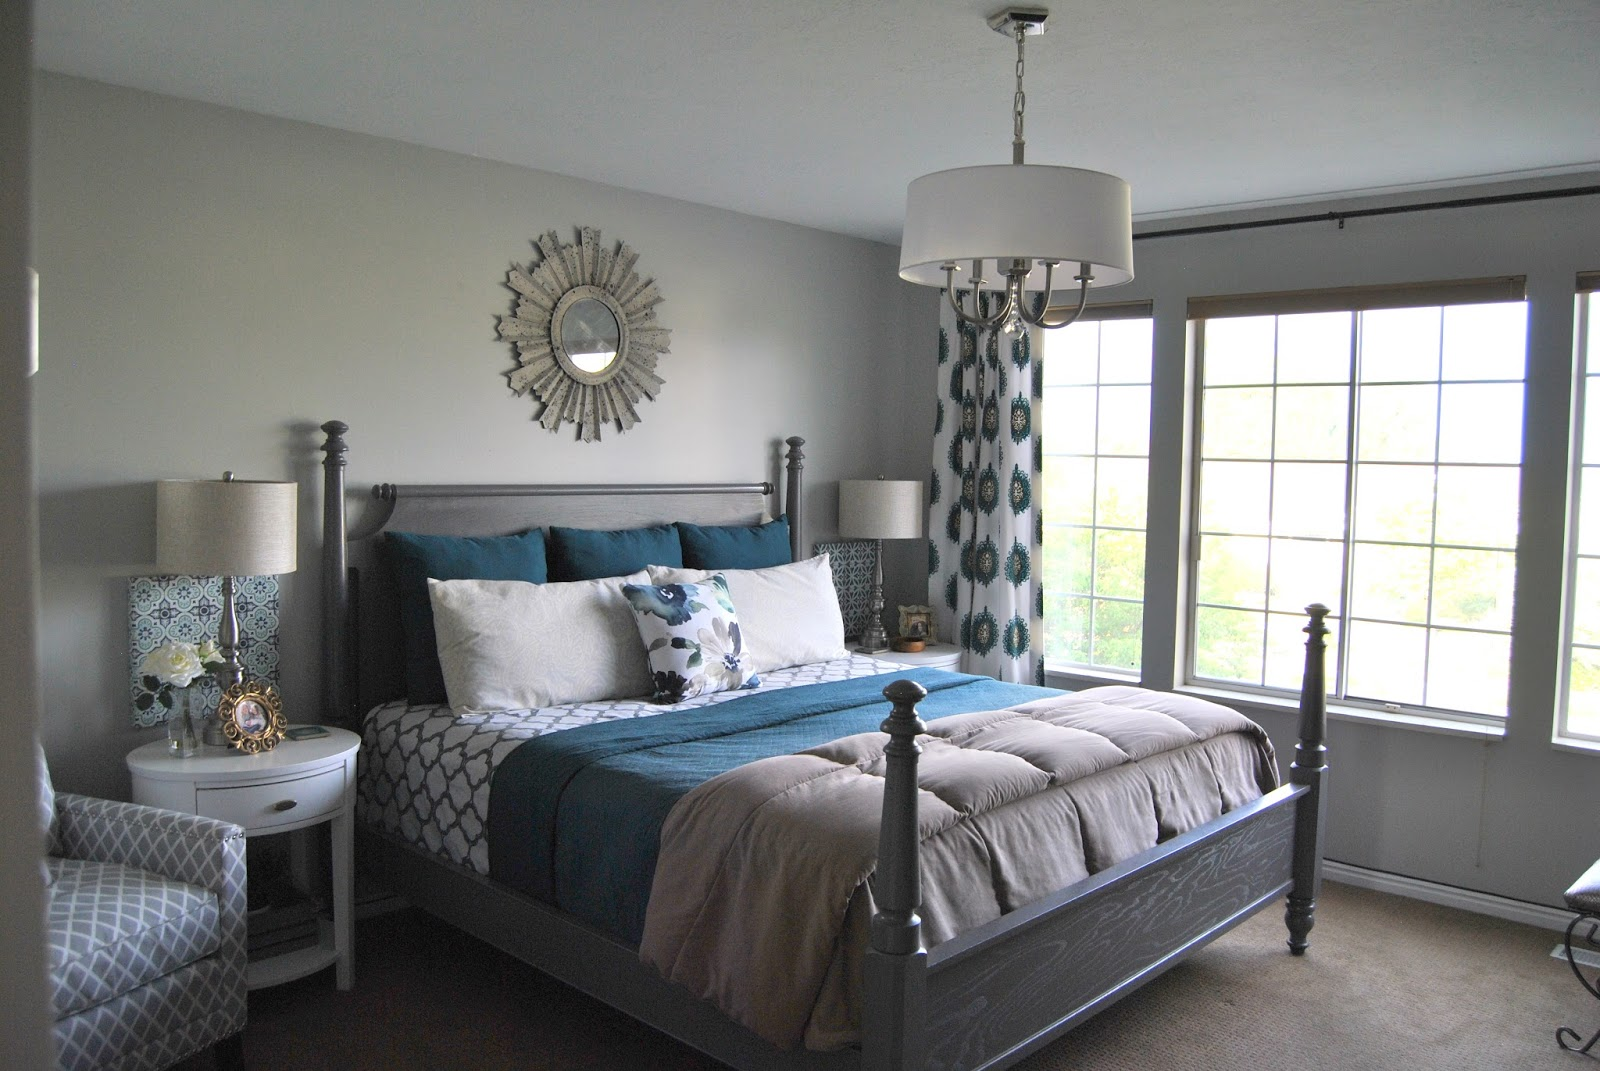 Studio 7 Interior Design Room Reveal Master Bedroom